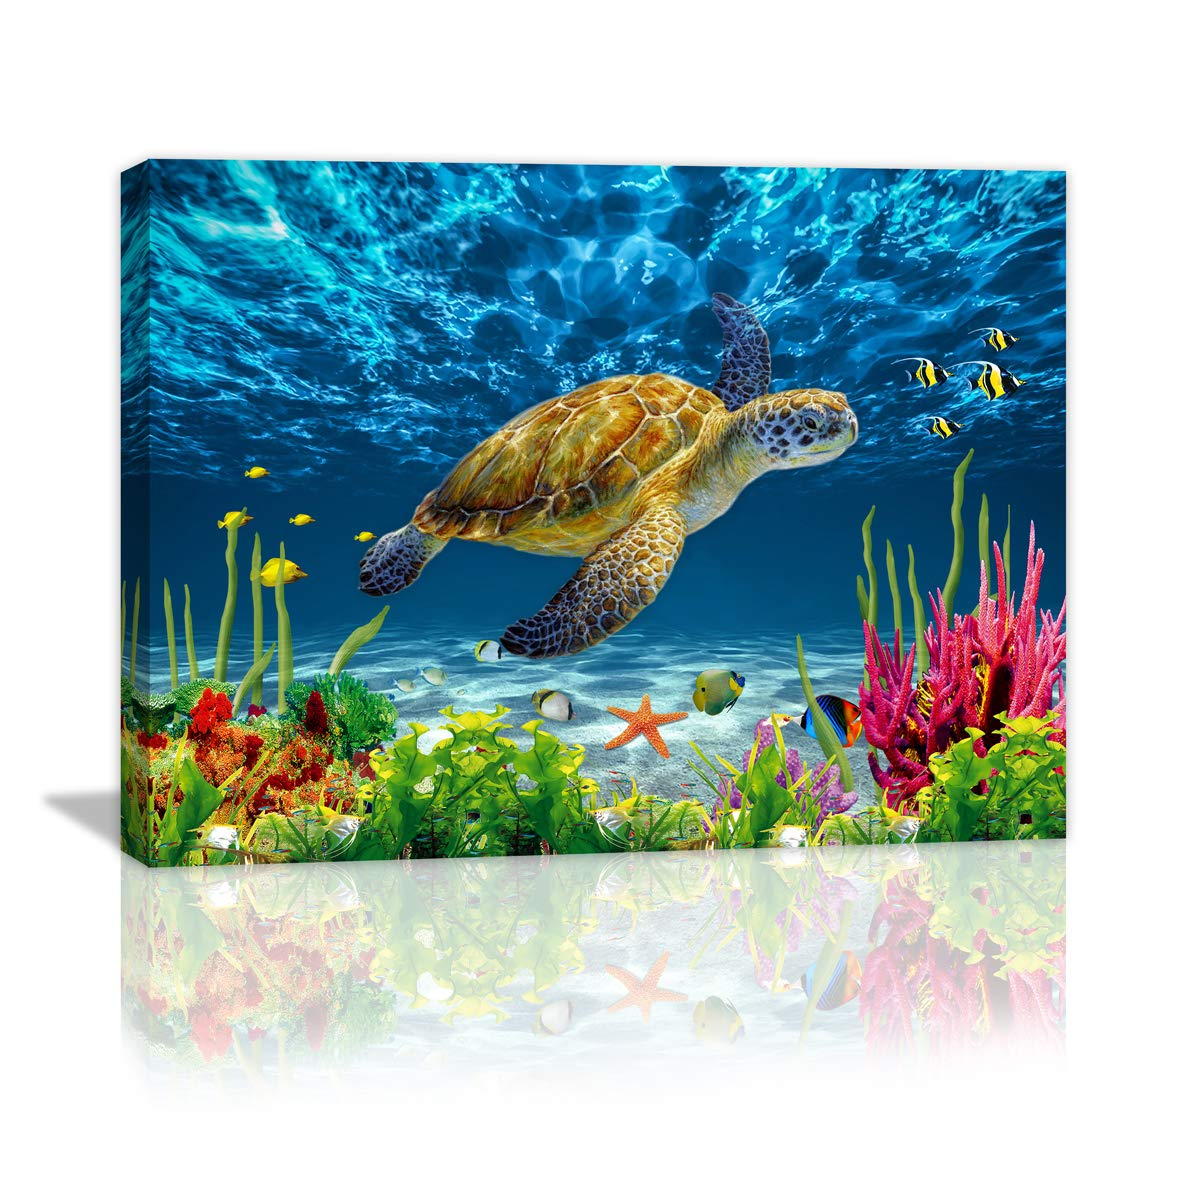 """Bathroom Wall Decor Blue Ocean Sea Turtle Wall Art Poster Artwork For Home Decor 1 Panel Canvas Prints Picture Seaview Bottom View Beneath Bathroom Decor Sea turtle Canvas Painting Size:12""""x16"""" inch"""